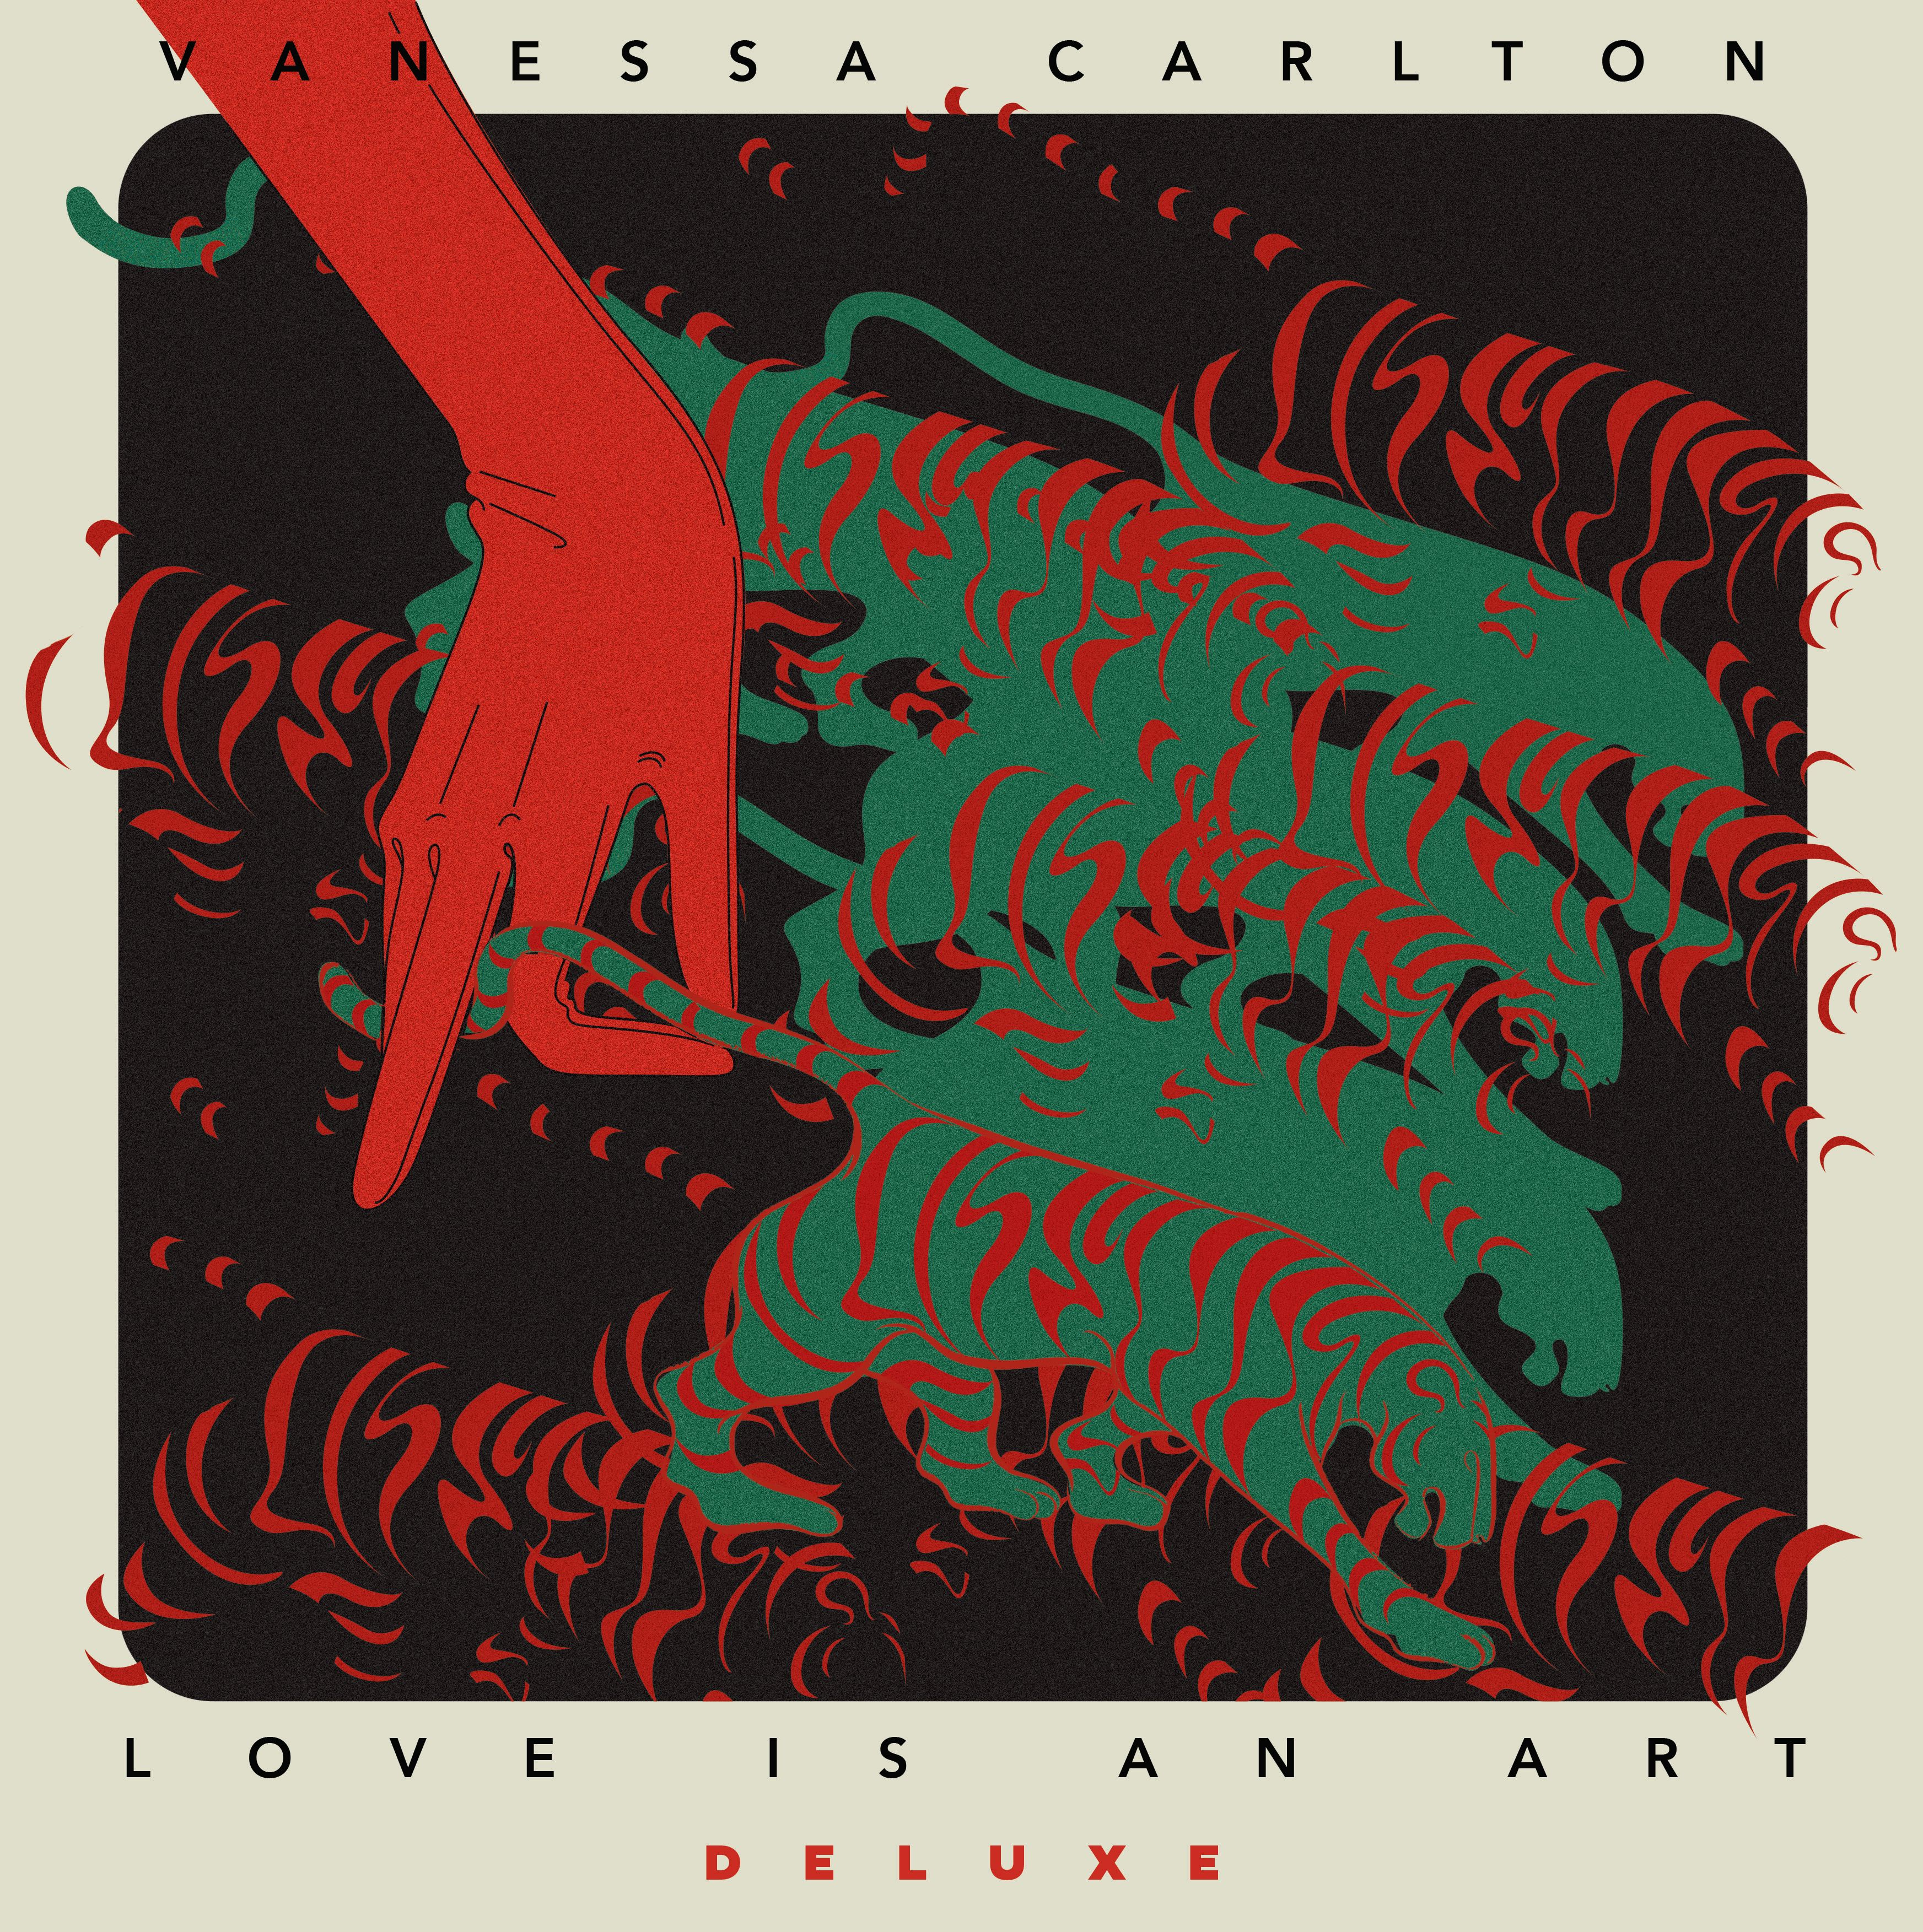 Love is an Art Deluxe Image